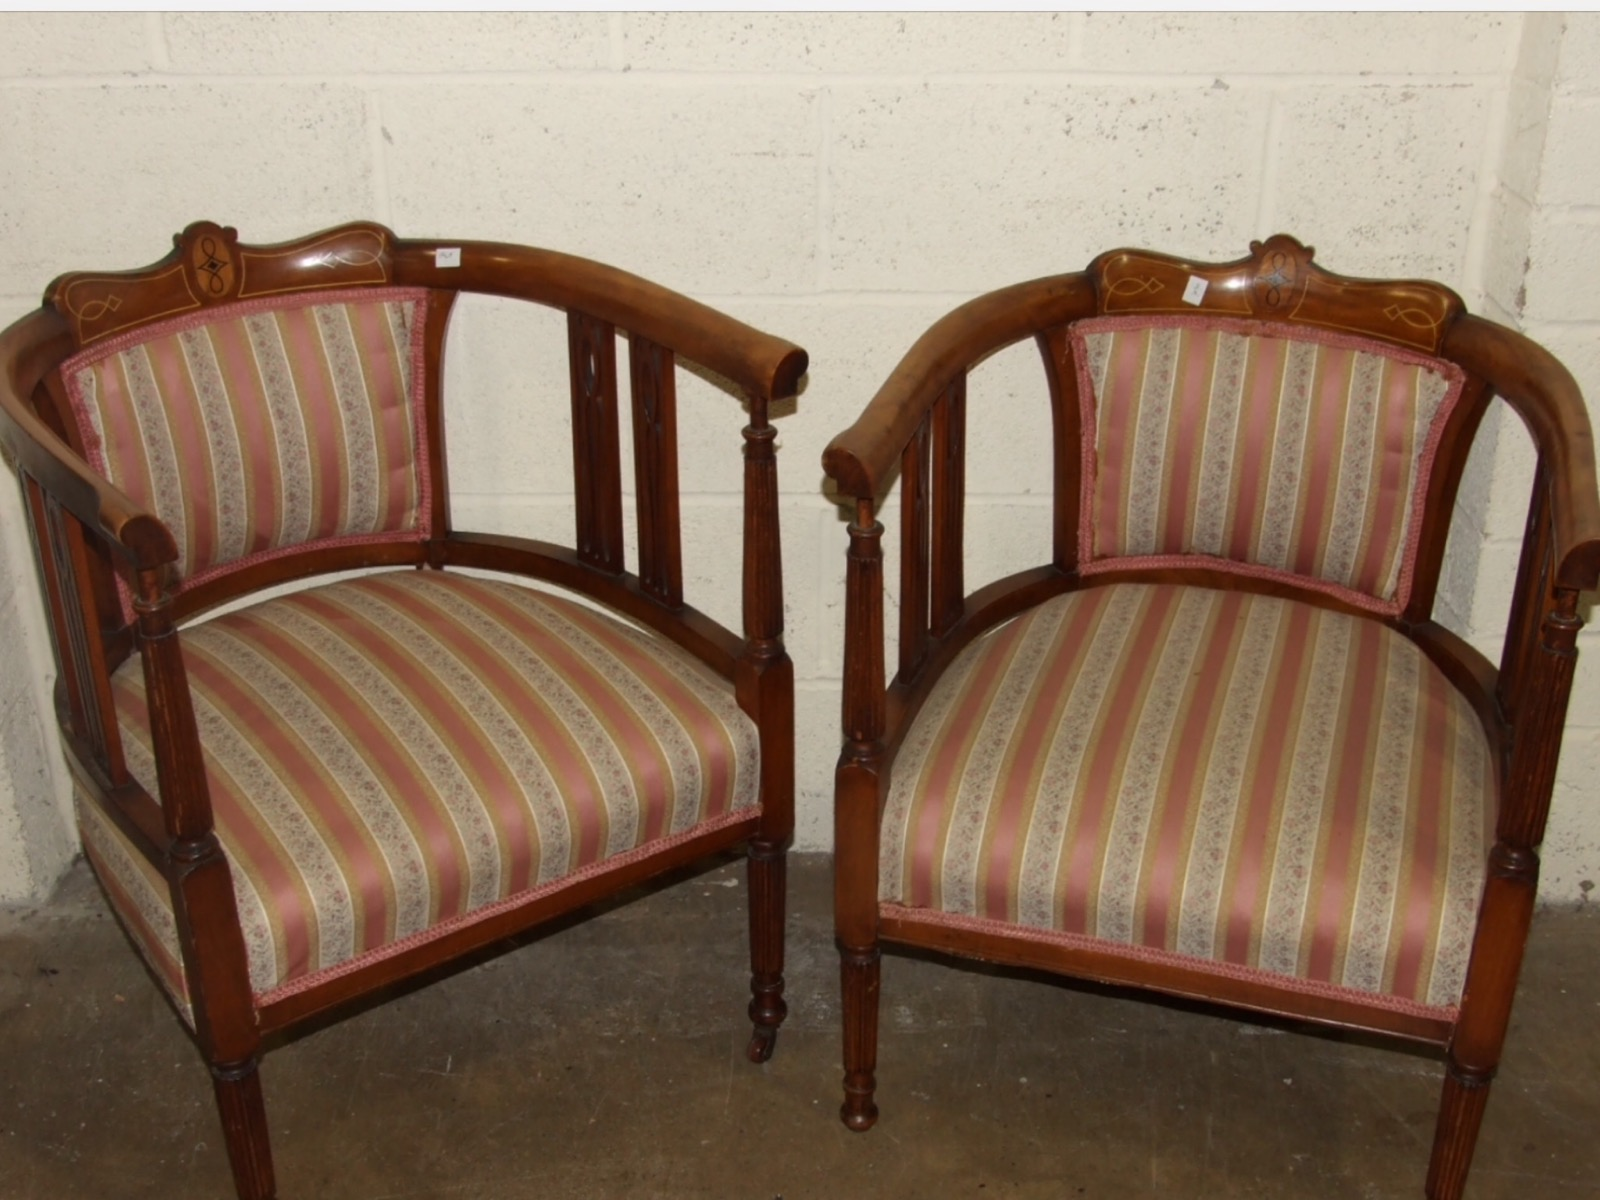 Pair of Inlaid Tub Armchairs (1 of 1)